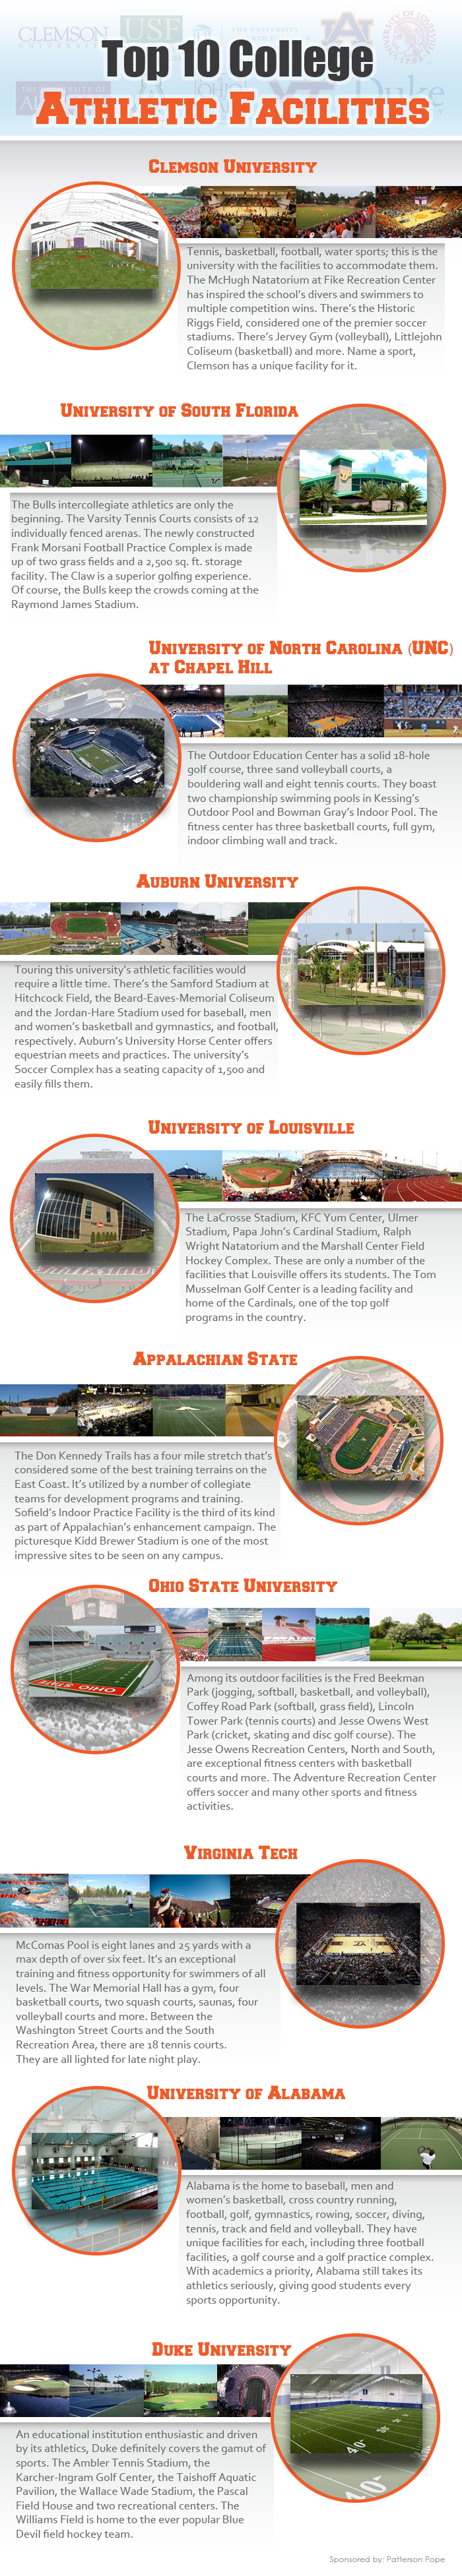 Top 10 Best College Athletic Facilities